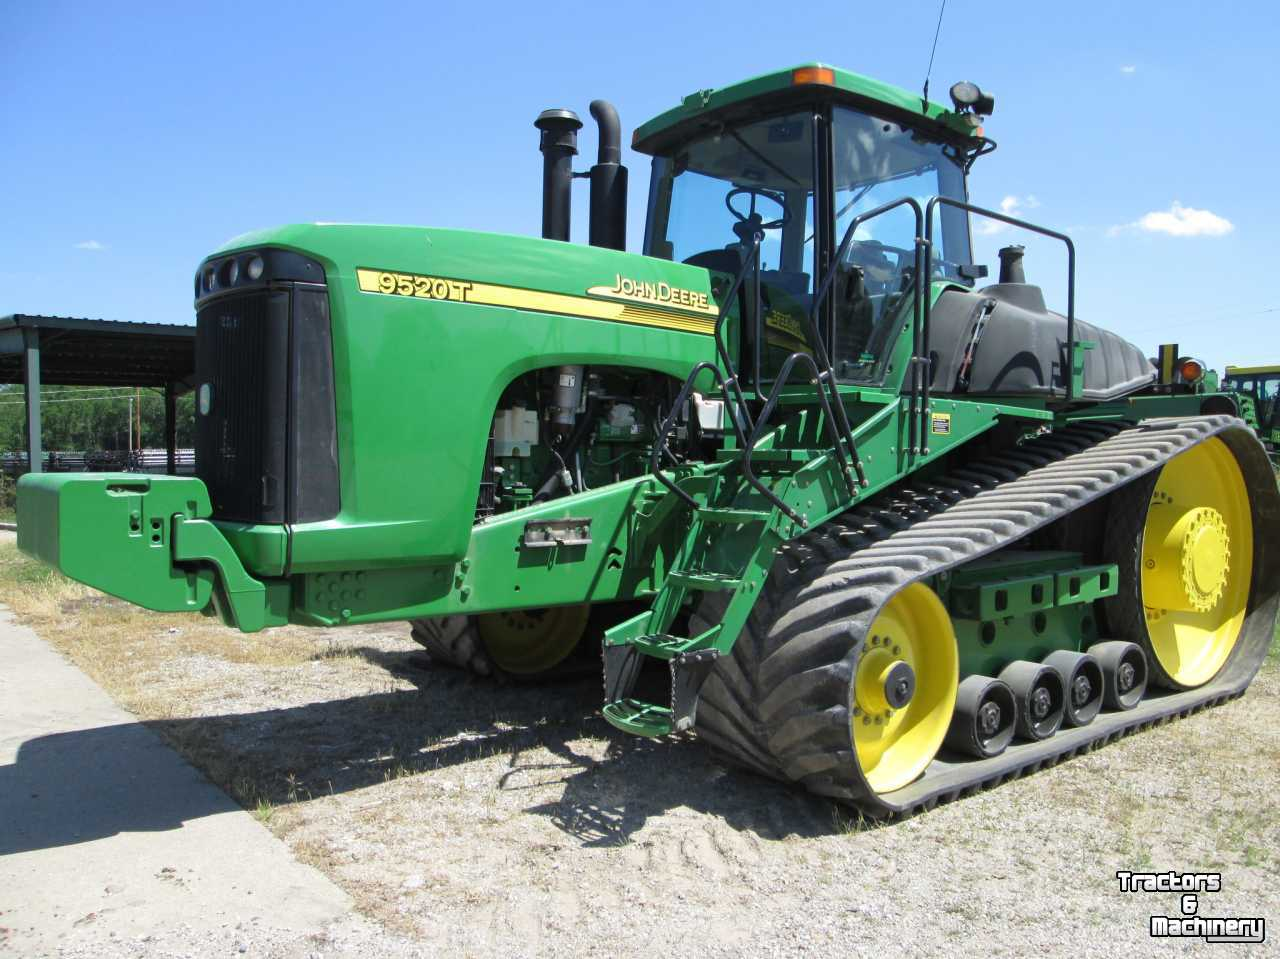 Tractor Front Track : John deere t track tractor on tracks used tractors